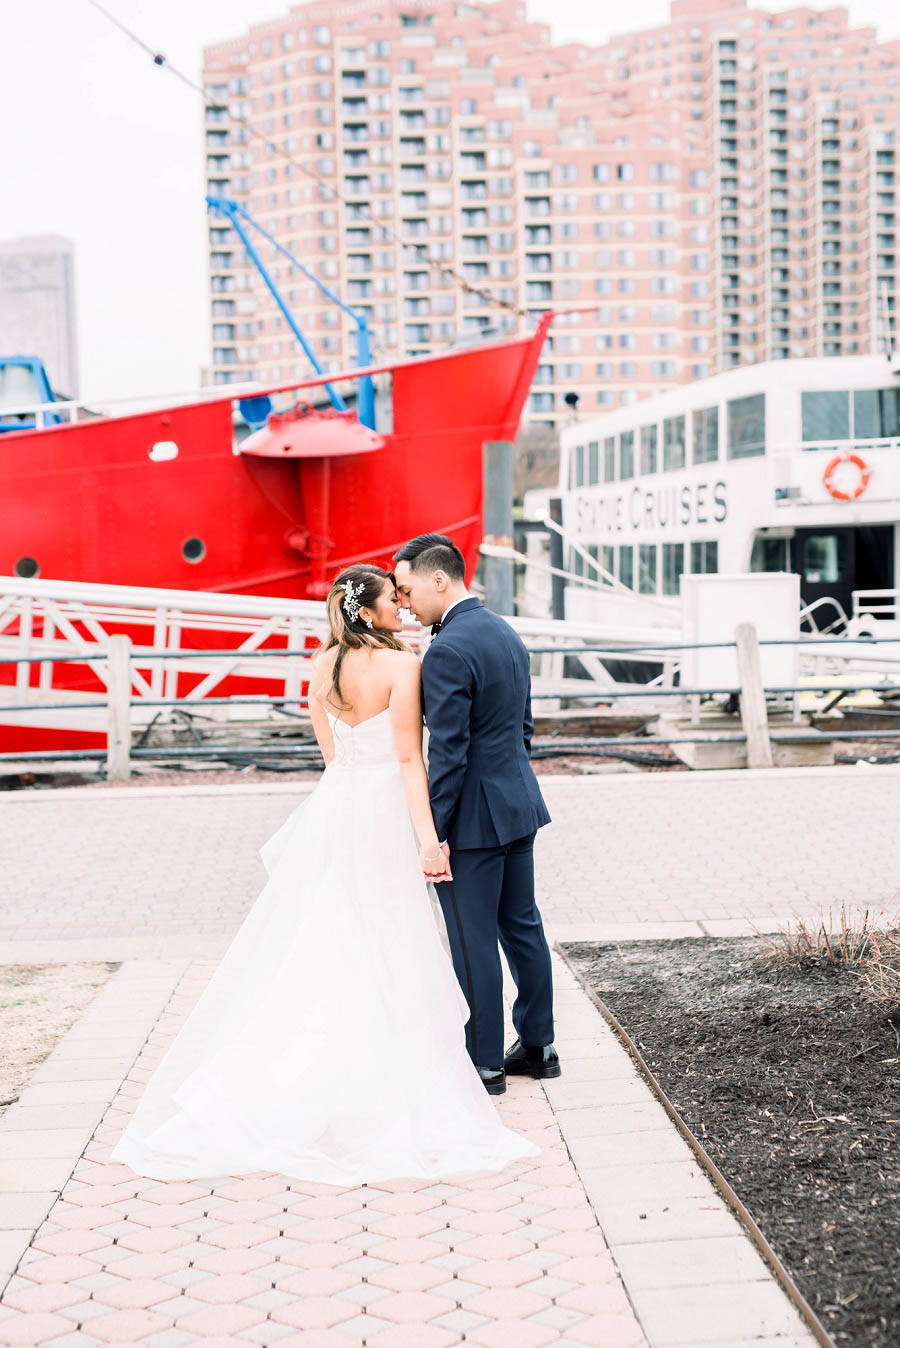 Liberty House Wedding - Jersey City - NJ Wedding Photographer - Myra Roman Photography-43.jpg